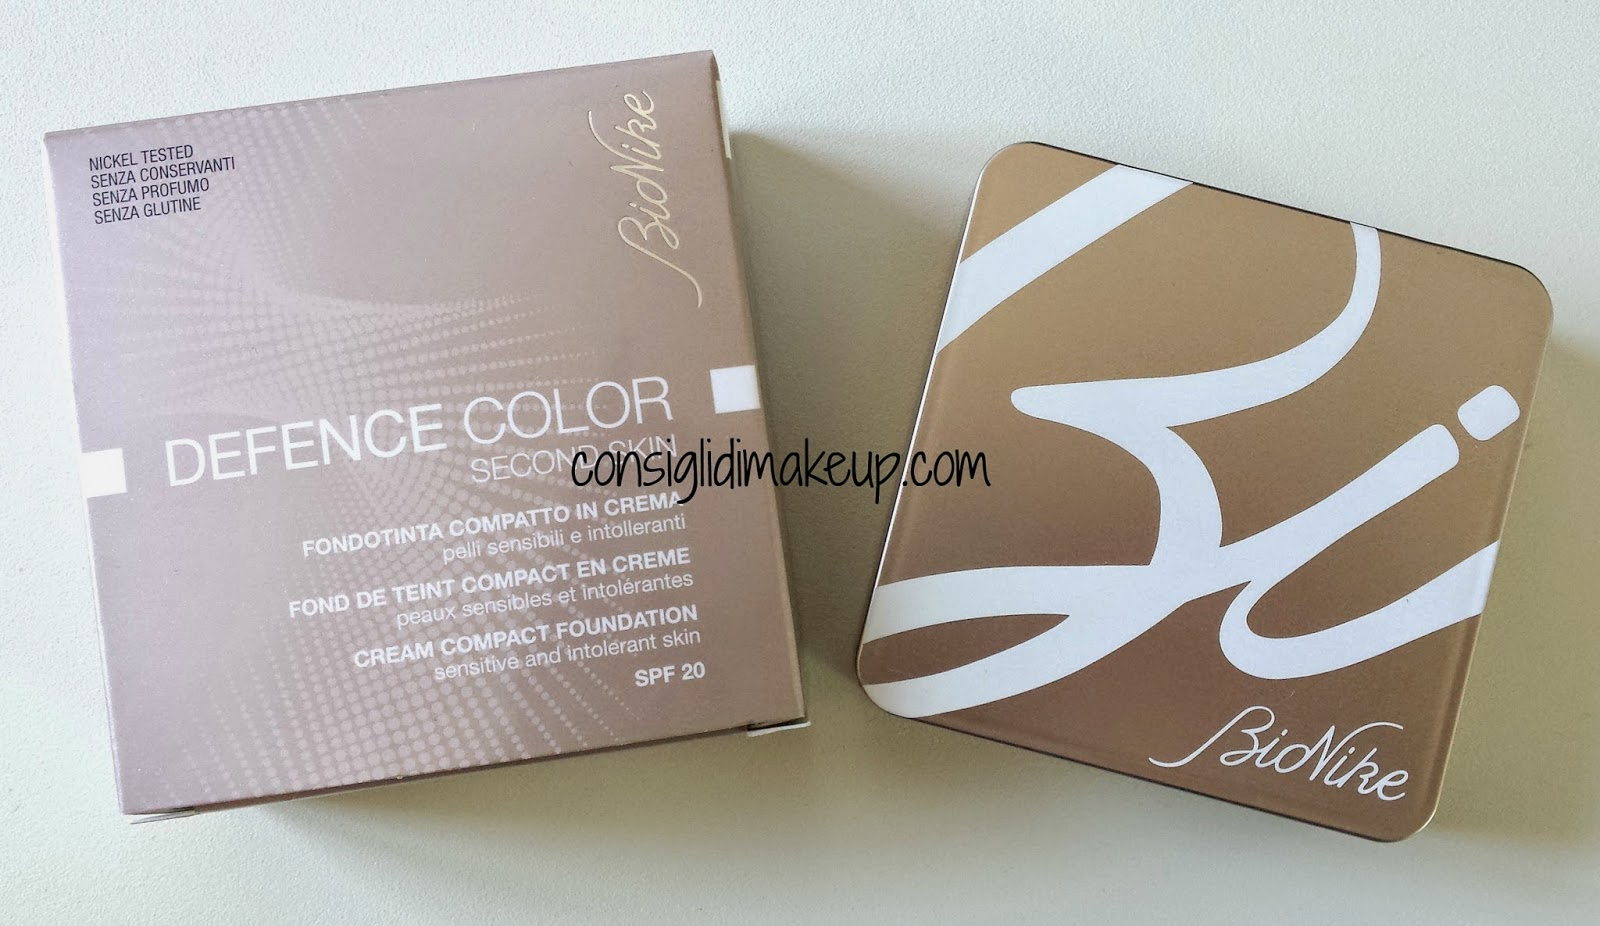 Review: Defence Color Second Skin - Bionike